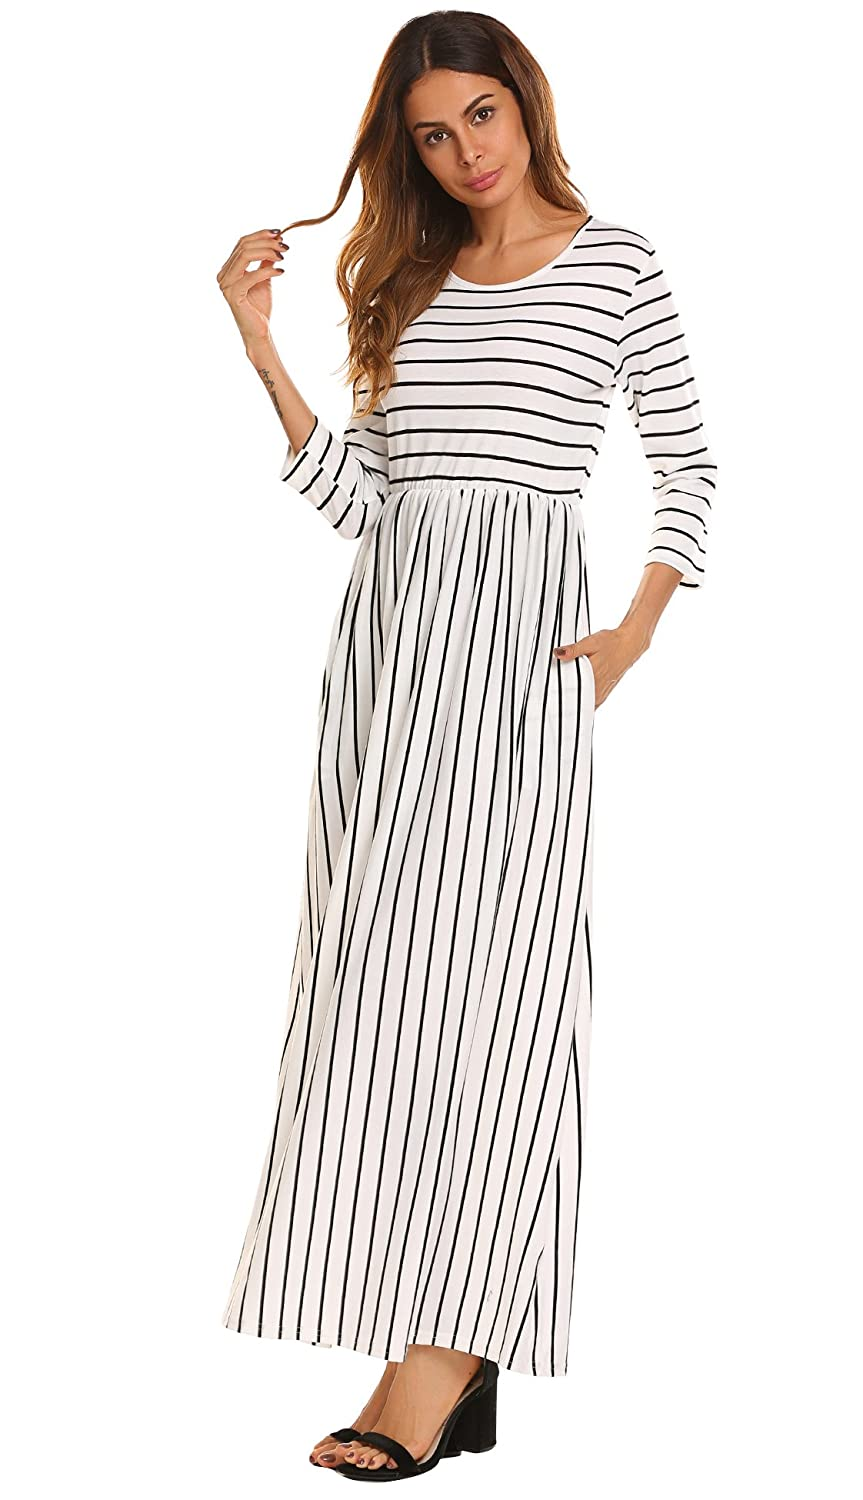 cec99460647 POGTMM Womens Casual Fall Striped 3 4 Sleeve Long Dress Plain A Line Maxi  Dress Side Pocket at Amazon Women s Clothing store